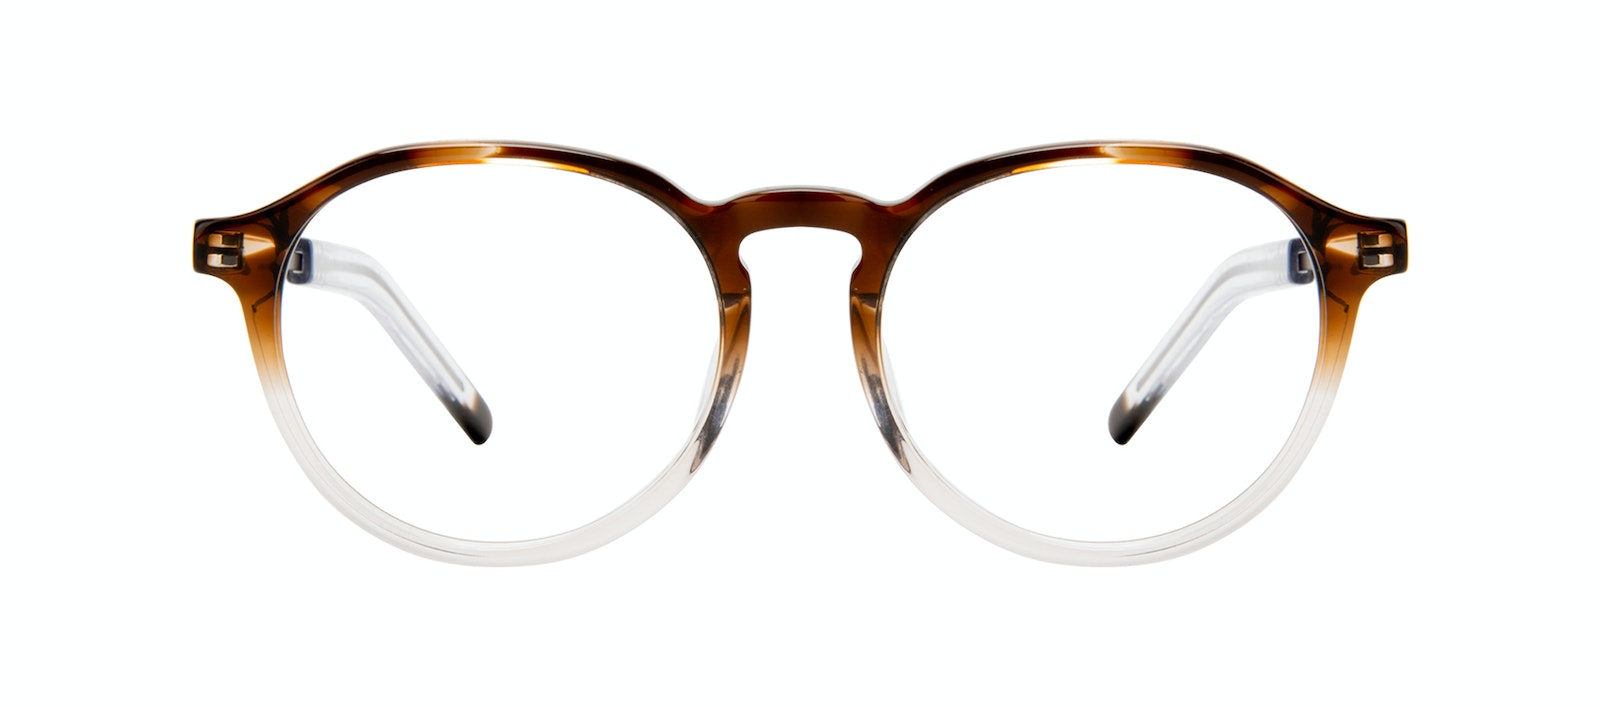 Affordable Fashion Glasses Round Eyeglasses Men Prime Bark Front